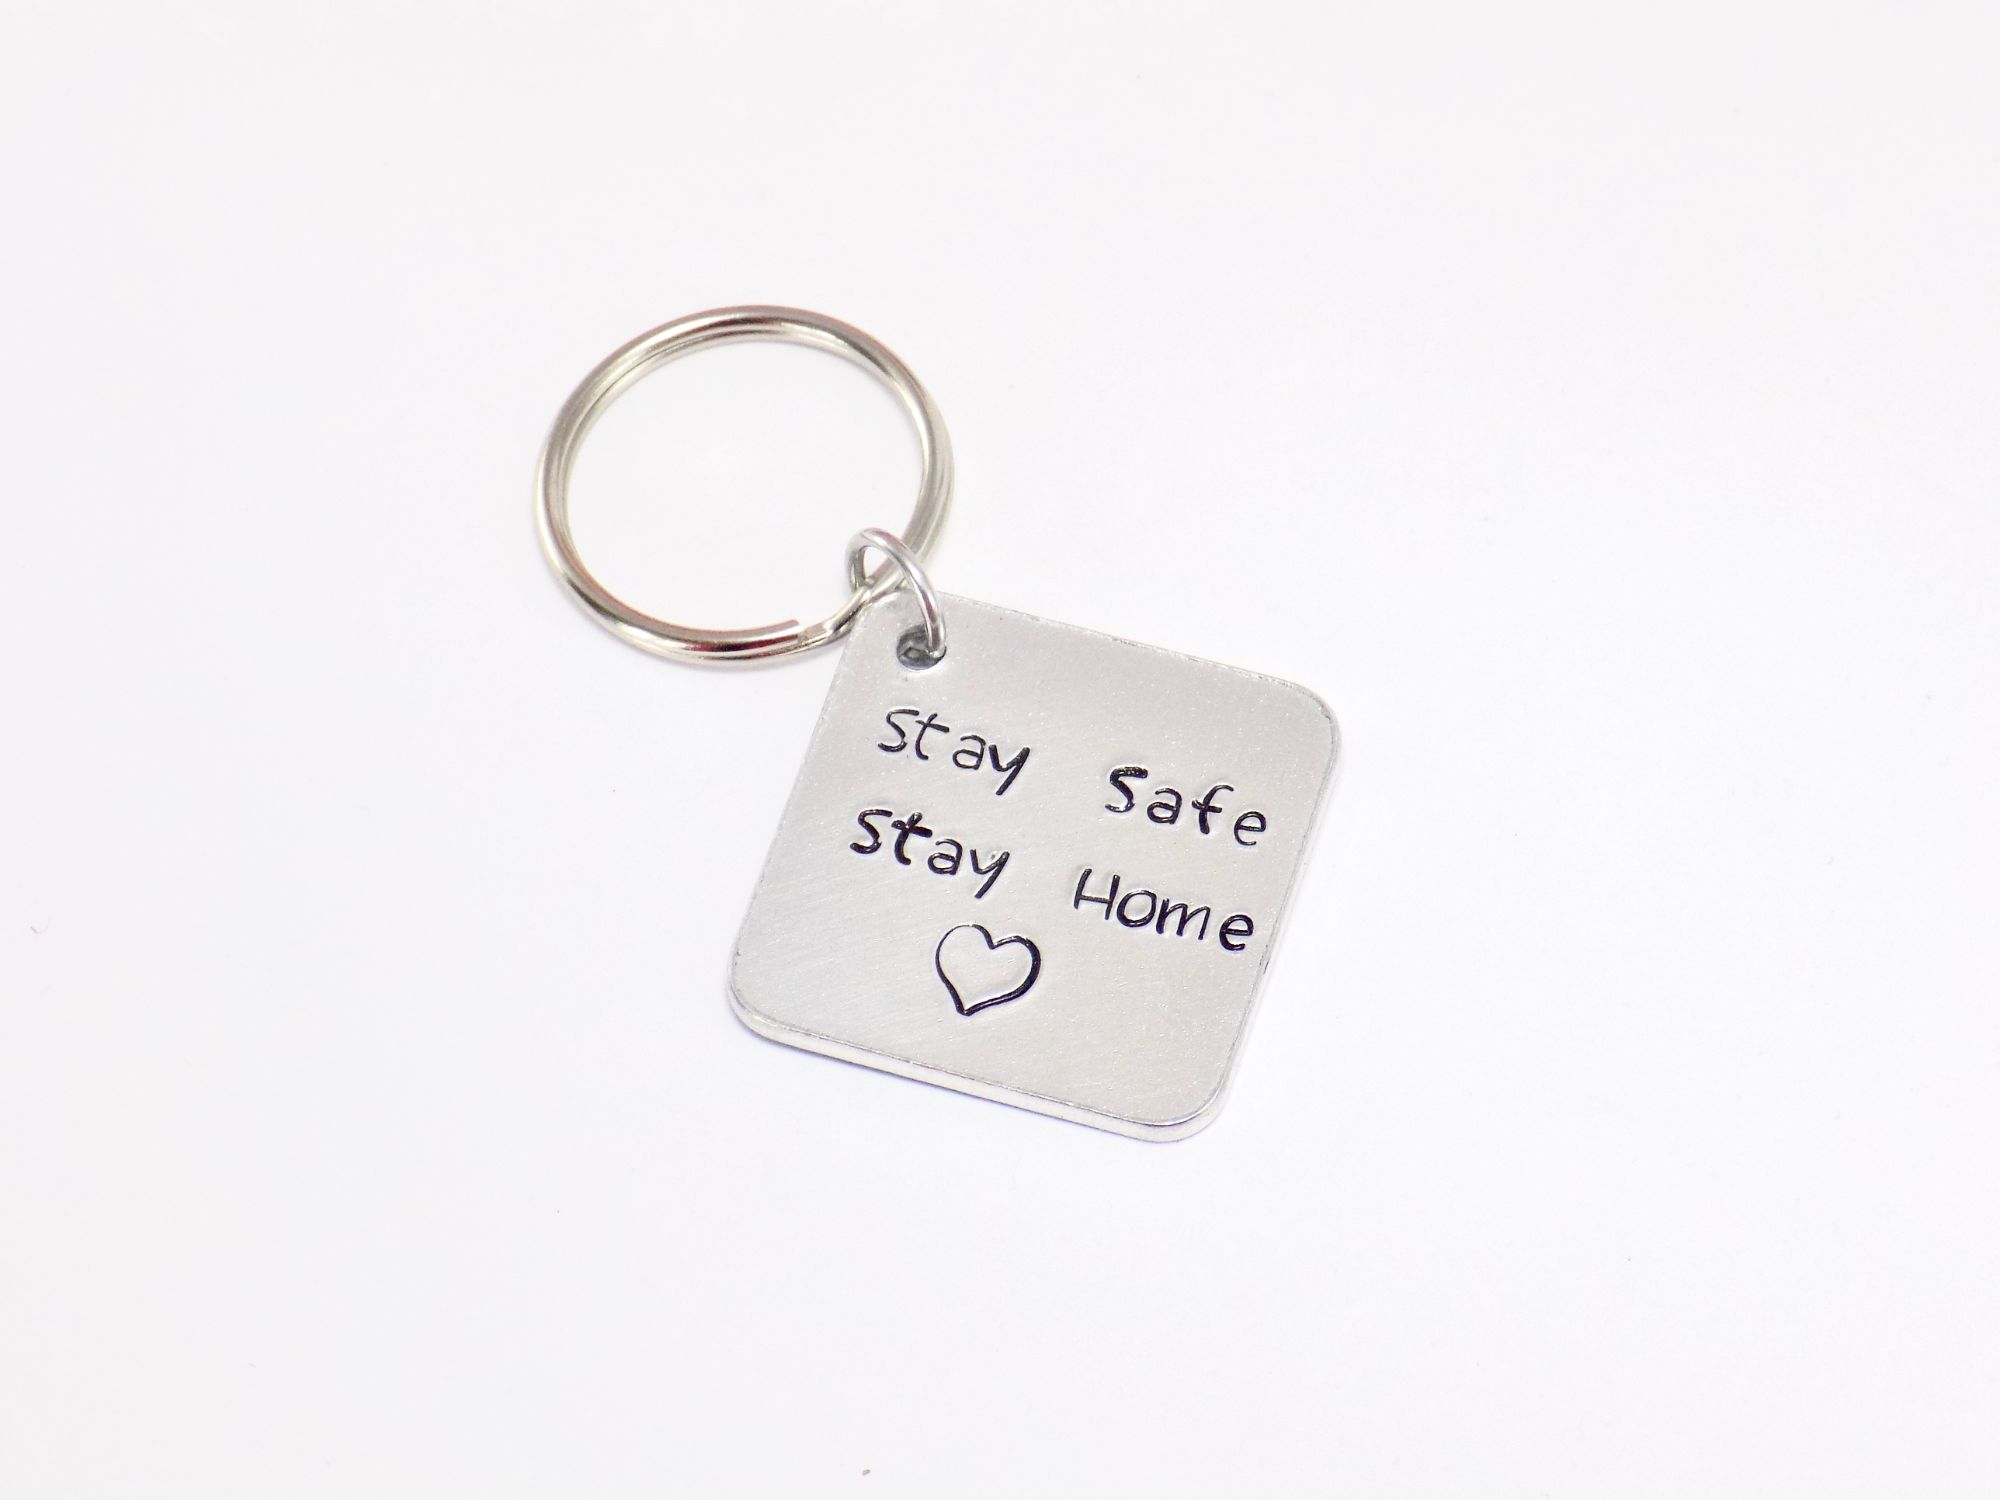 Stay SAFE stAY hOME keyring